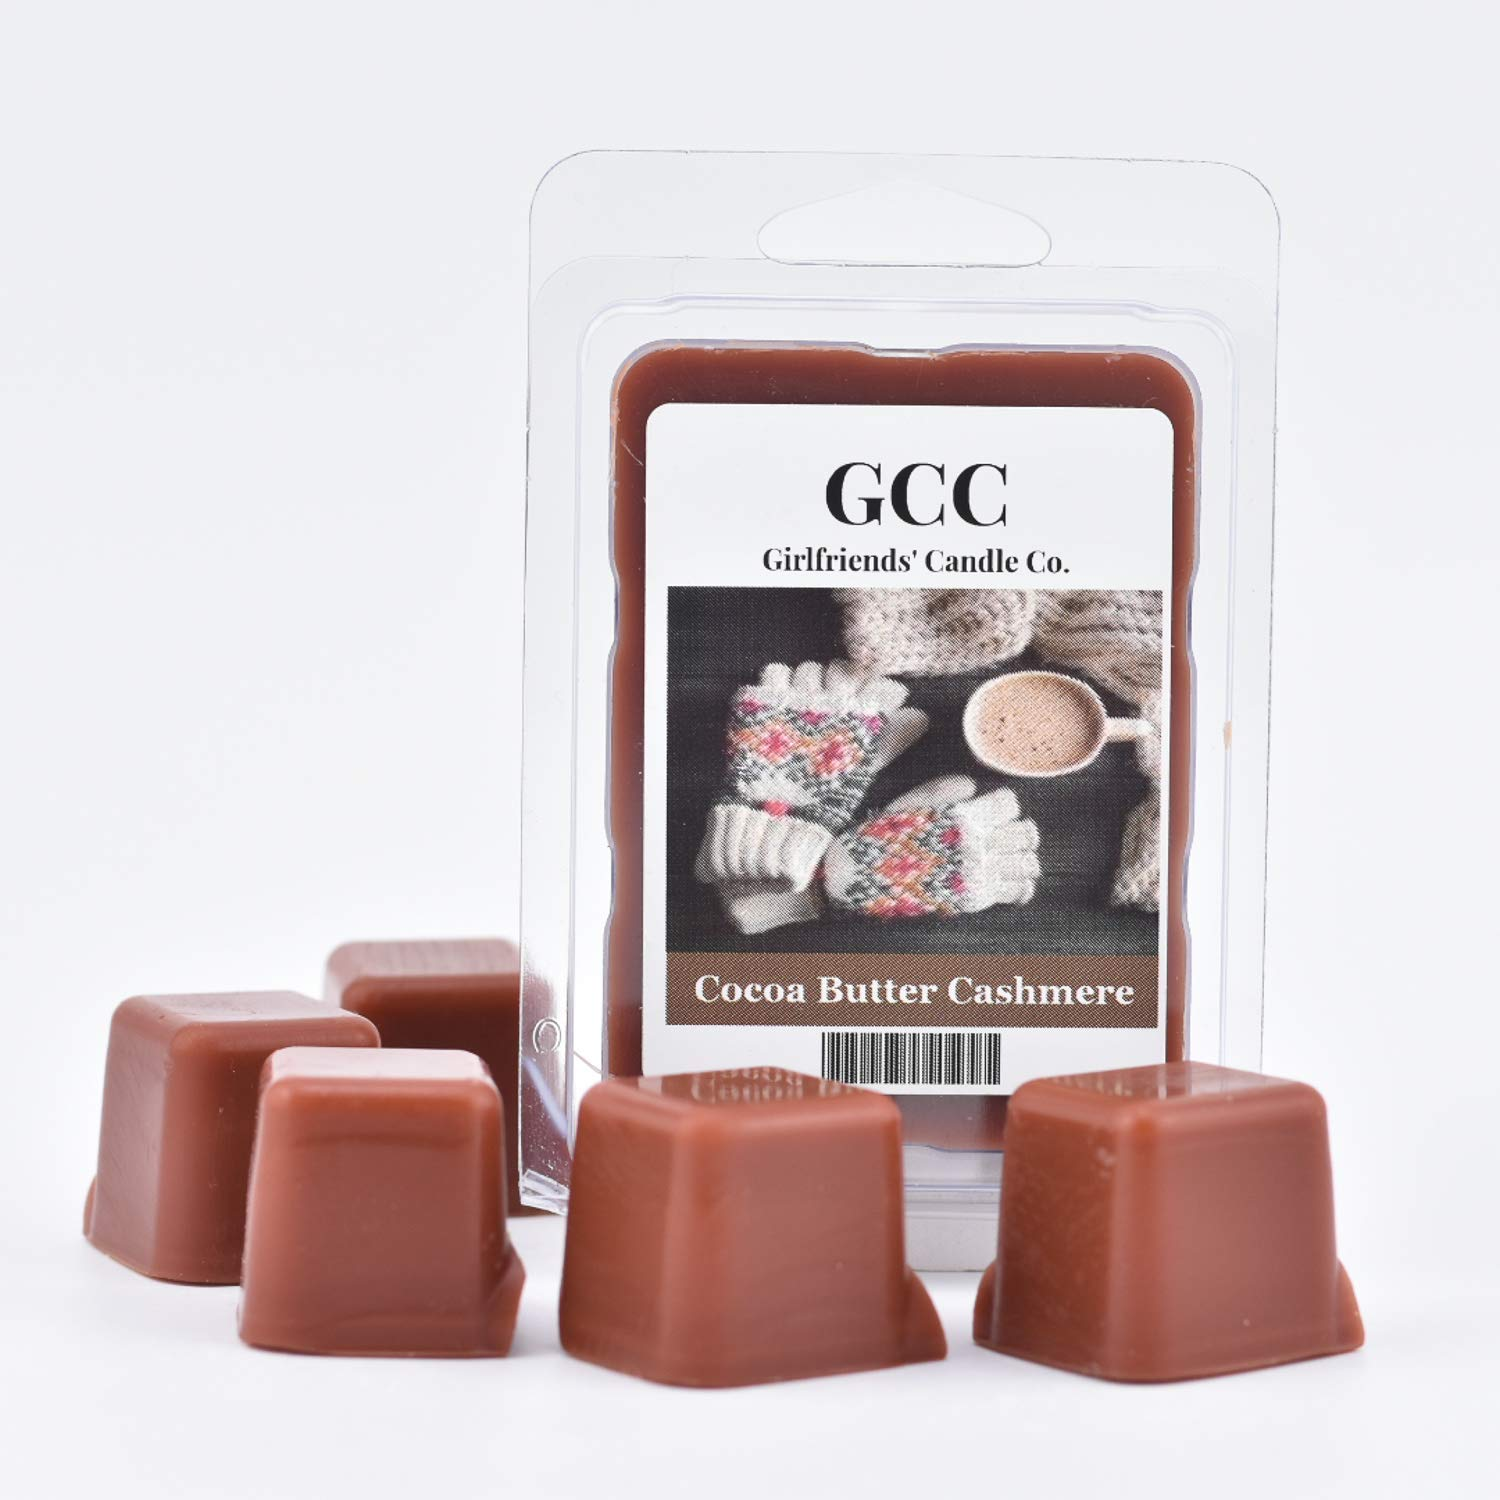 Cocoa Butter Cashmere Scented Wax Melt